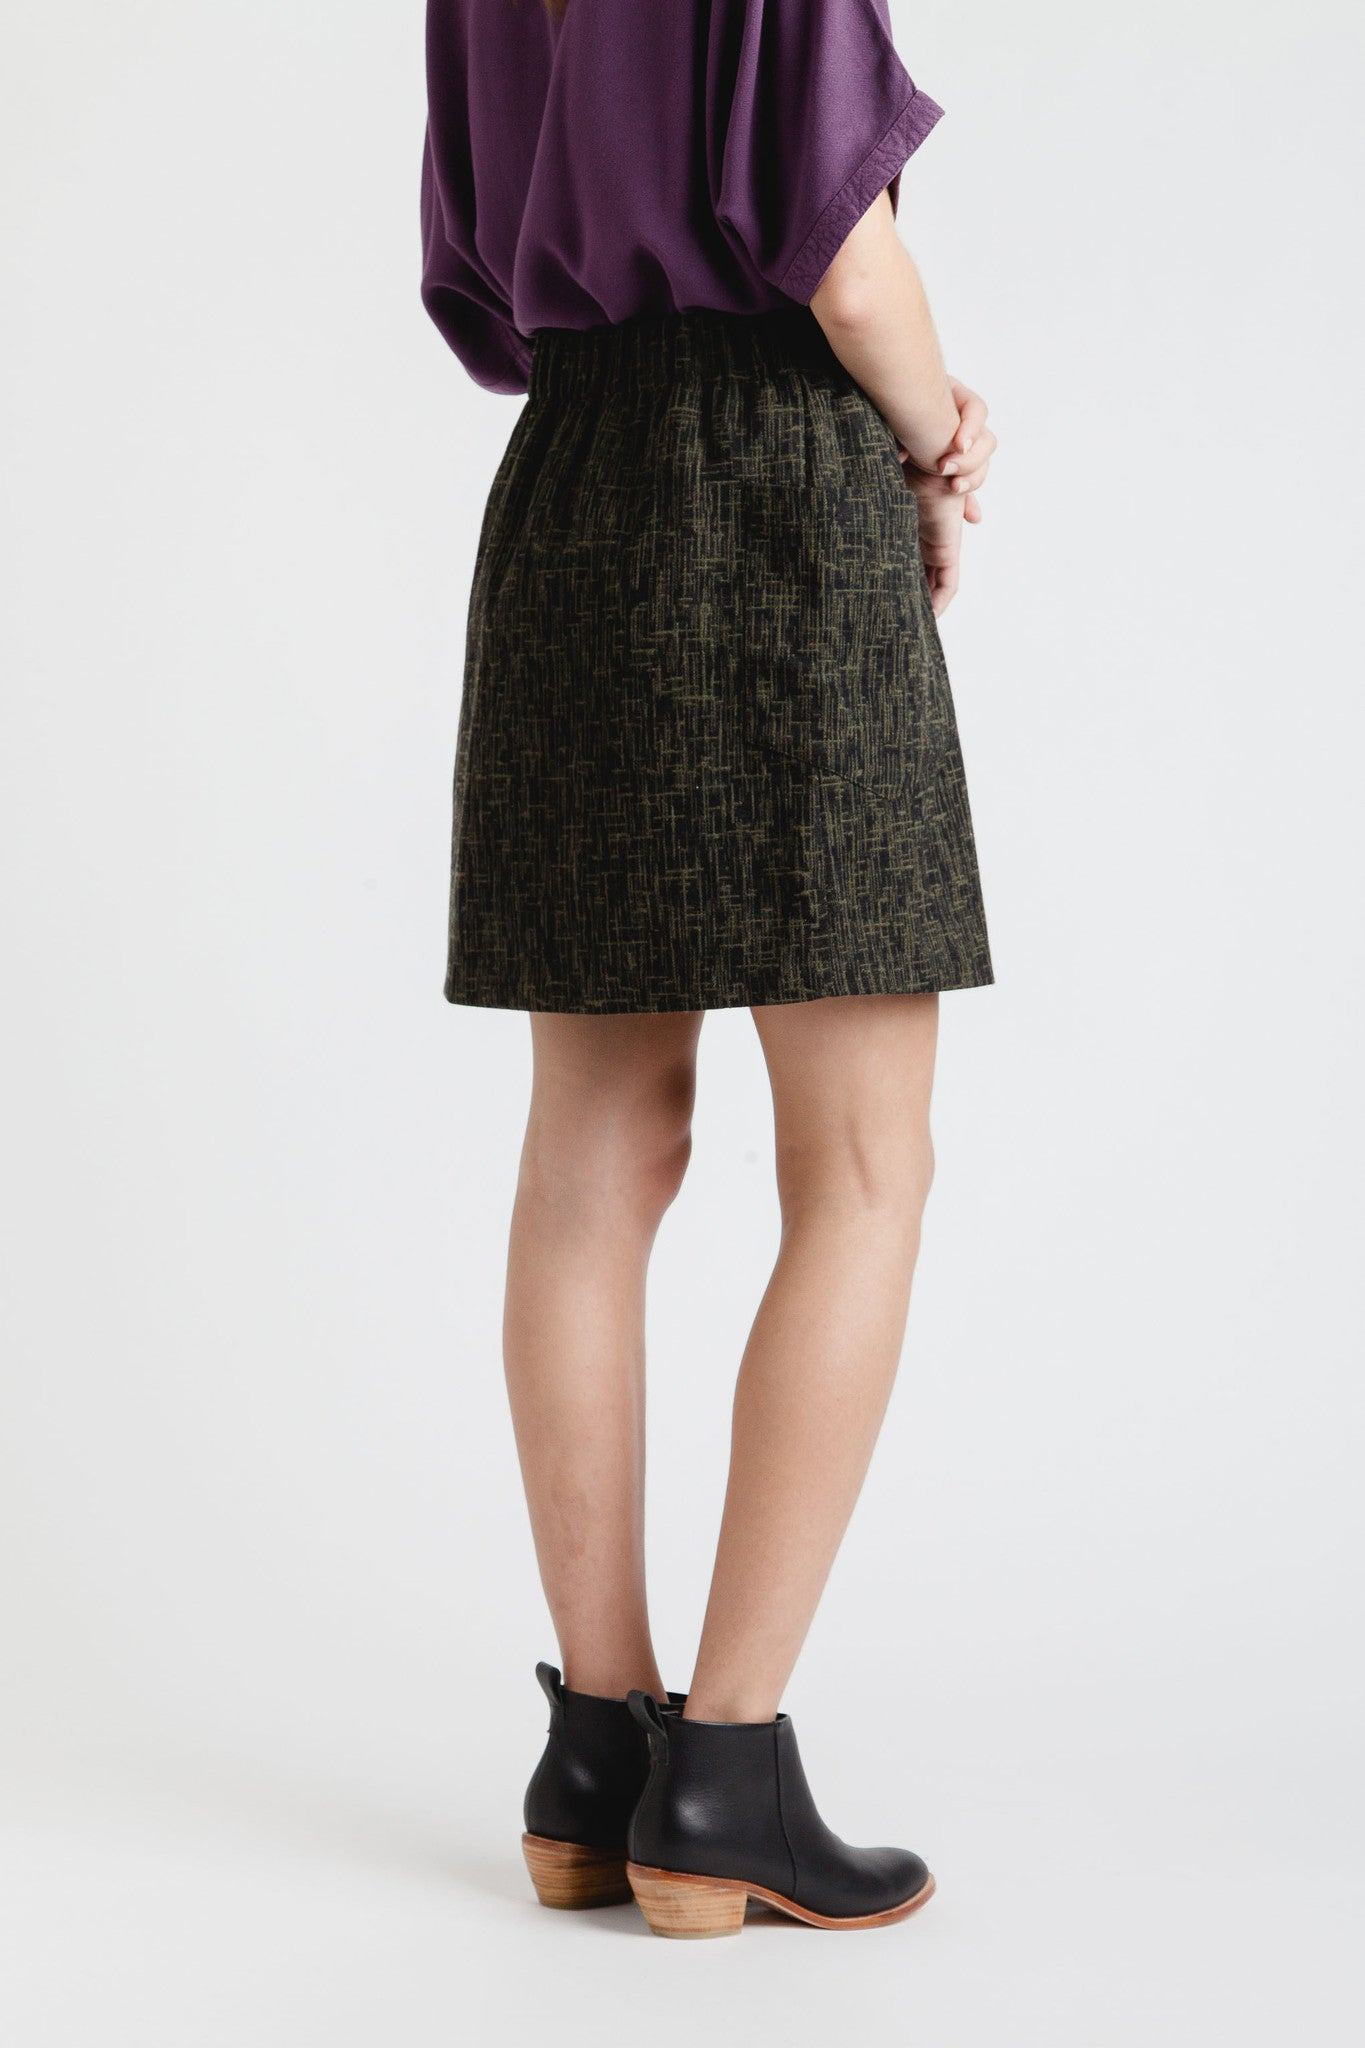 A. Cheng / Olive Tweed Two Pocket Skirt